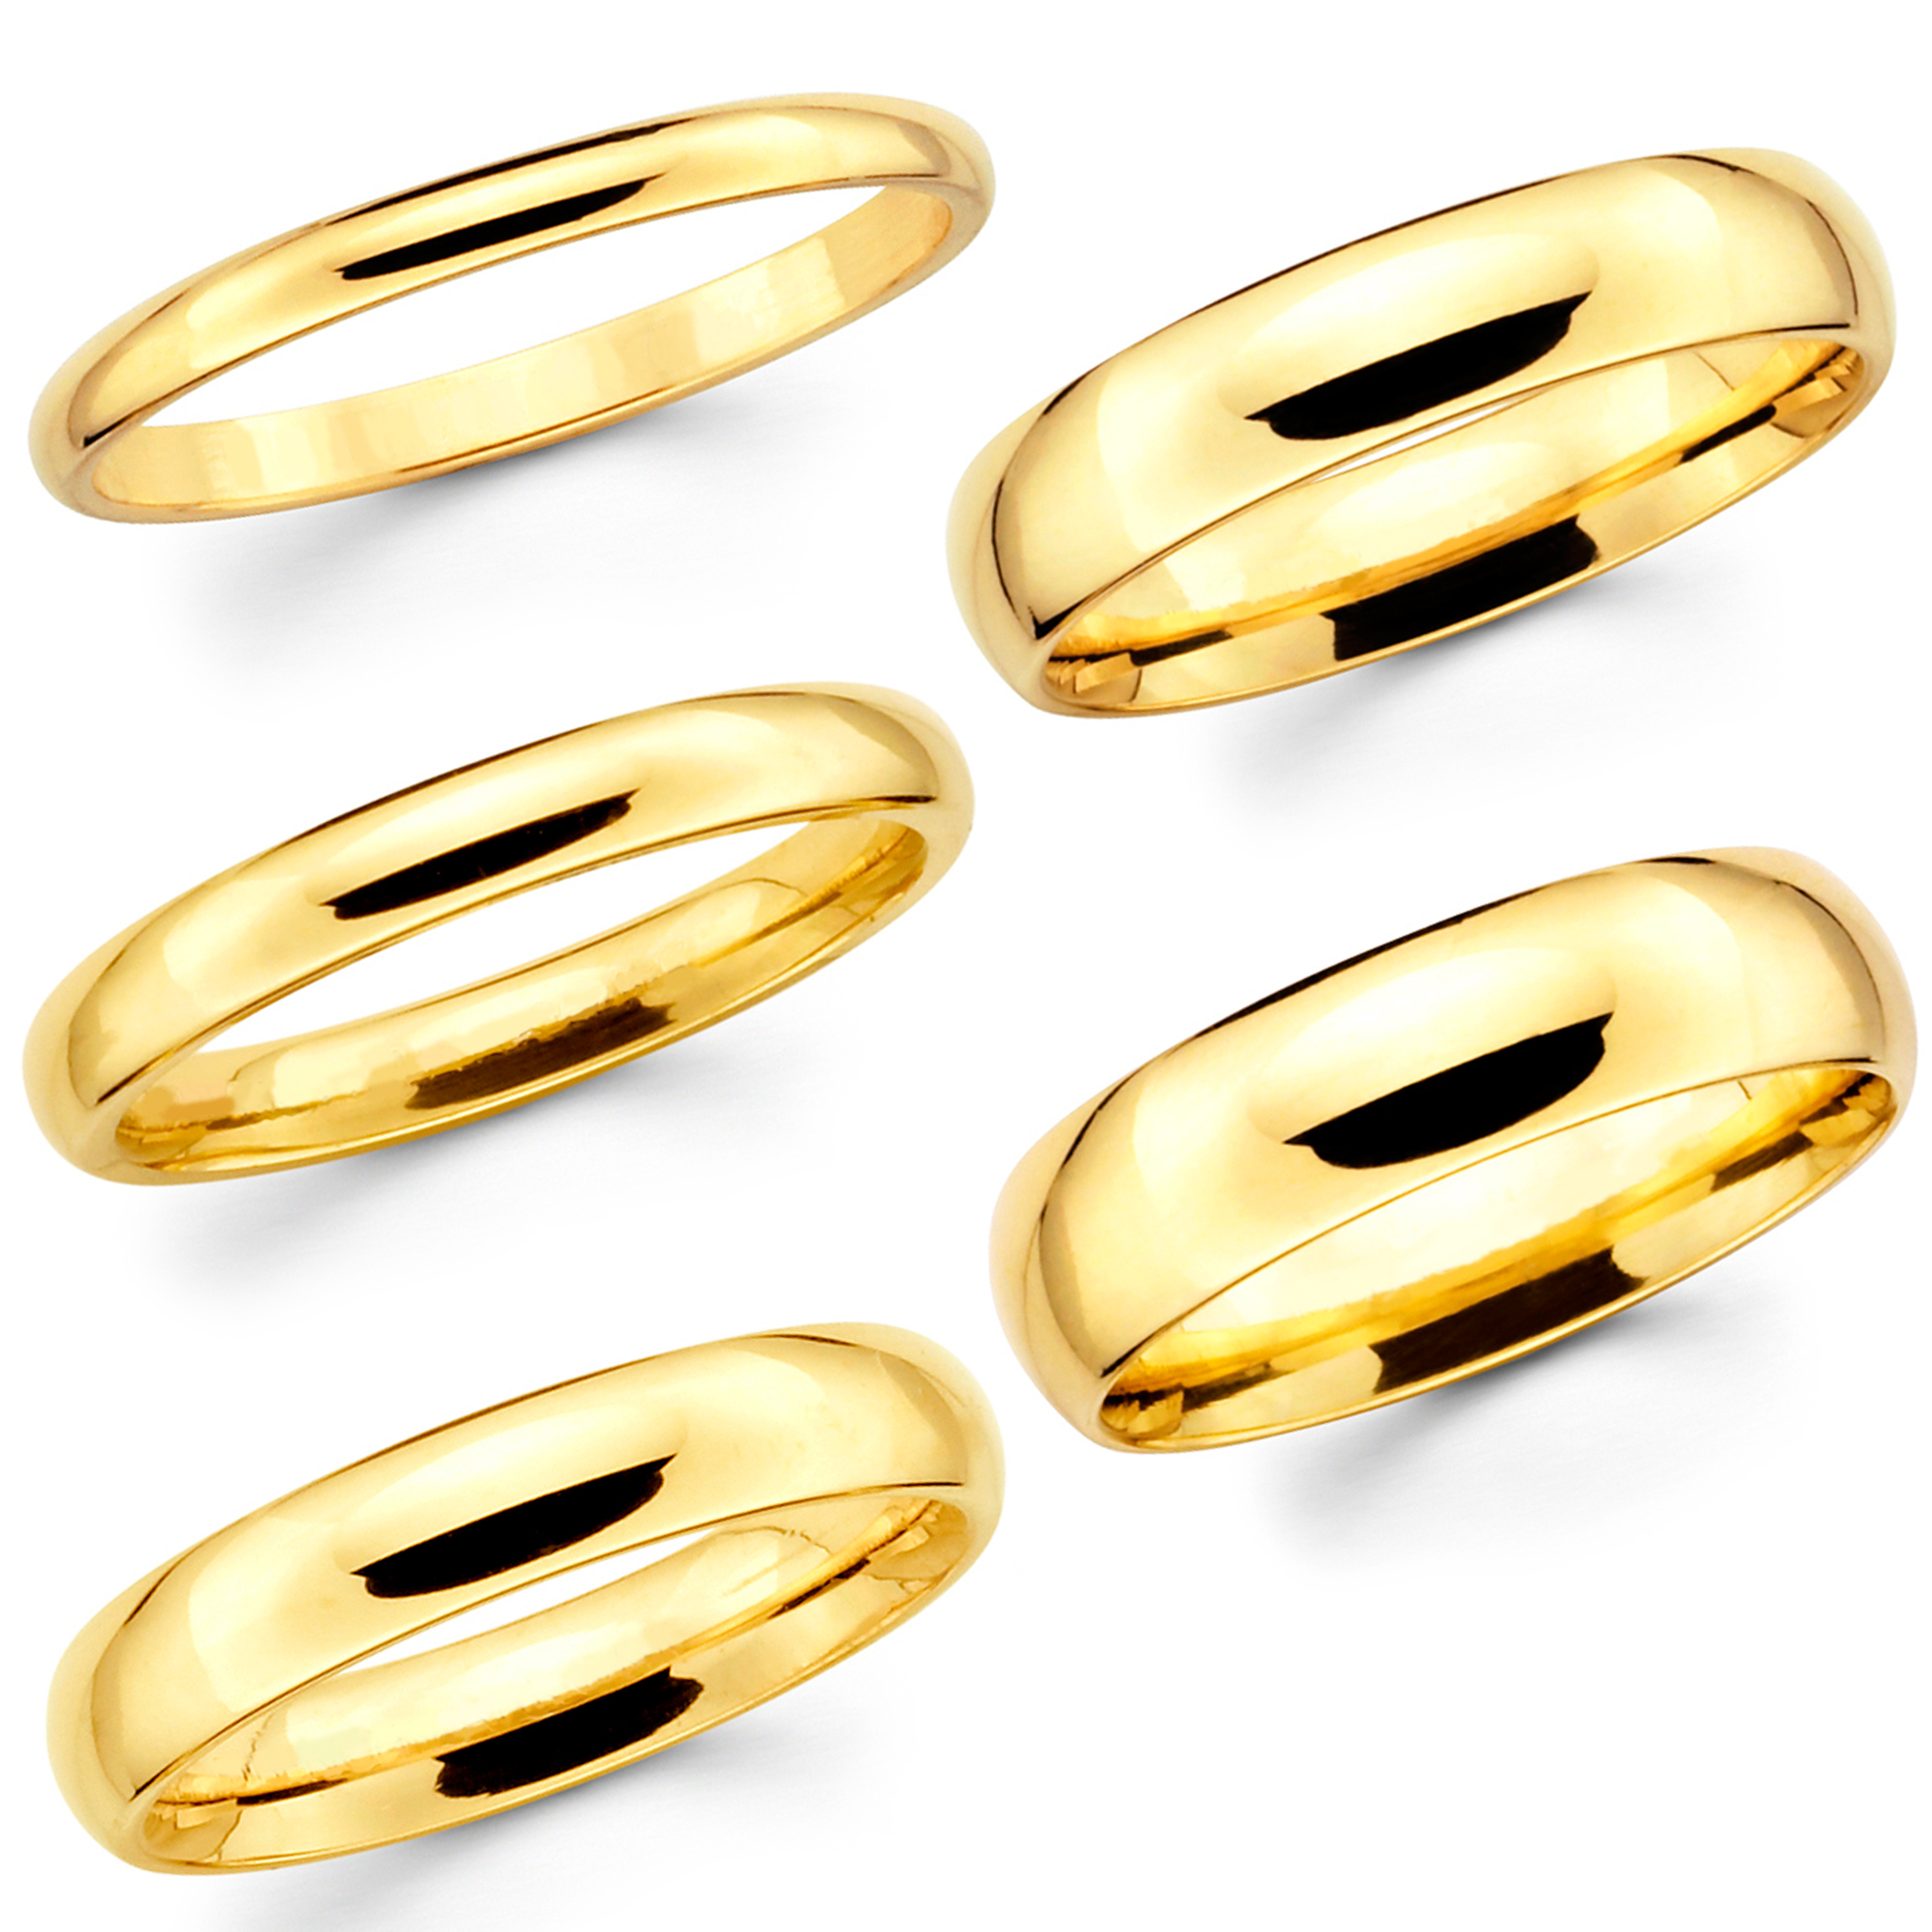 engagement wedding products gold mens small rings cz set round band flat couple plated ring womens